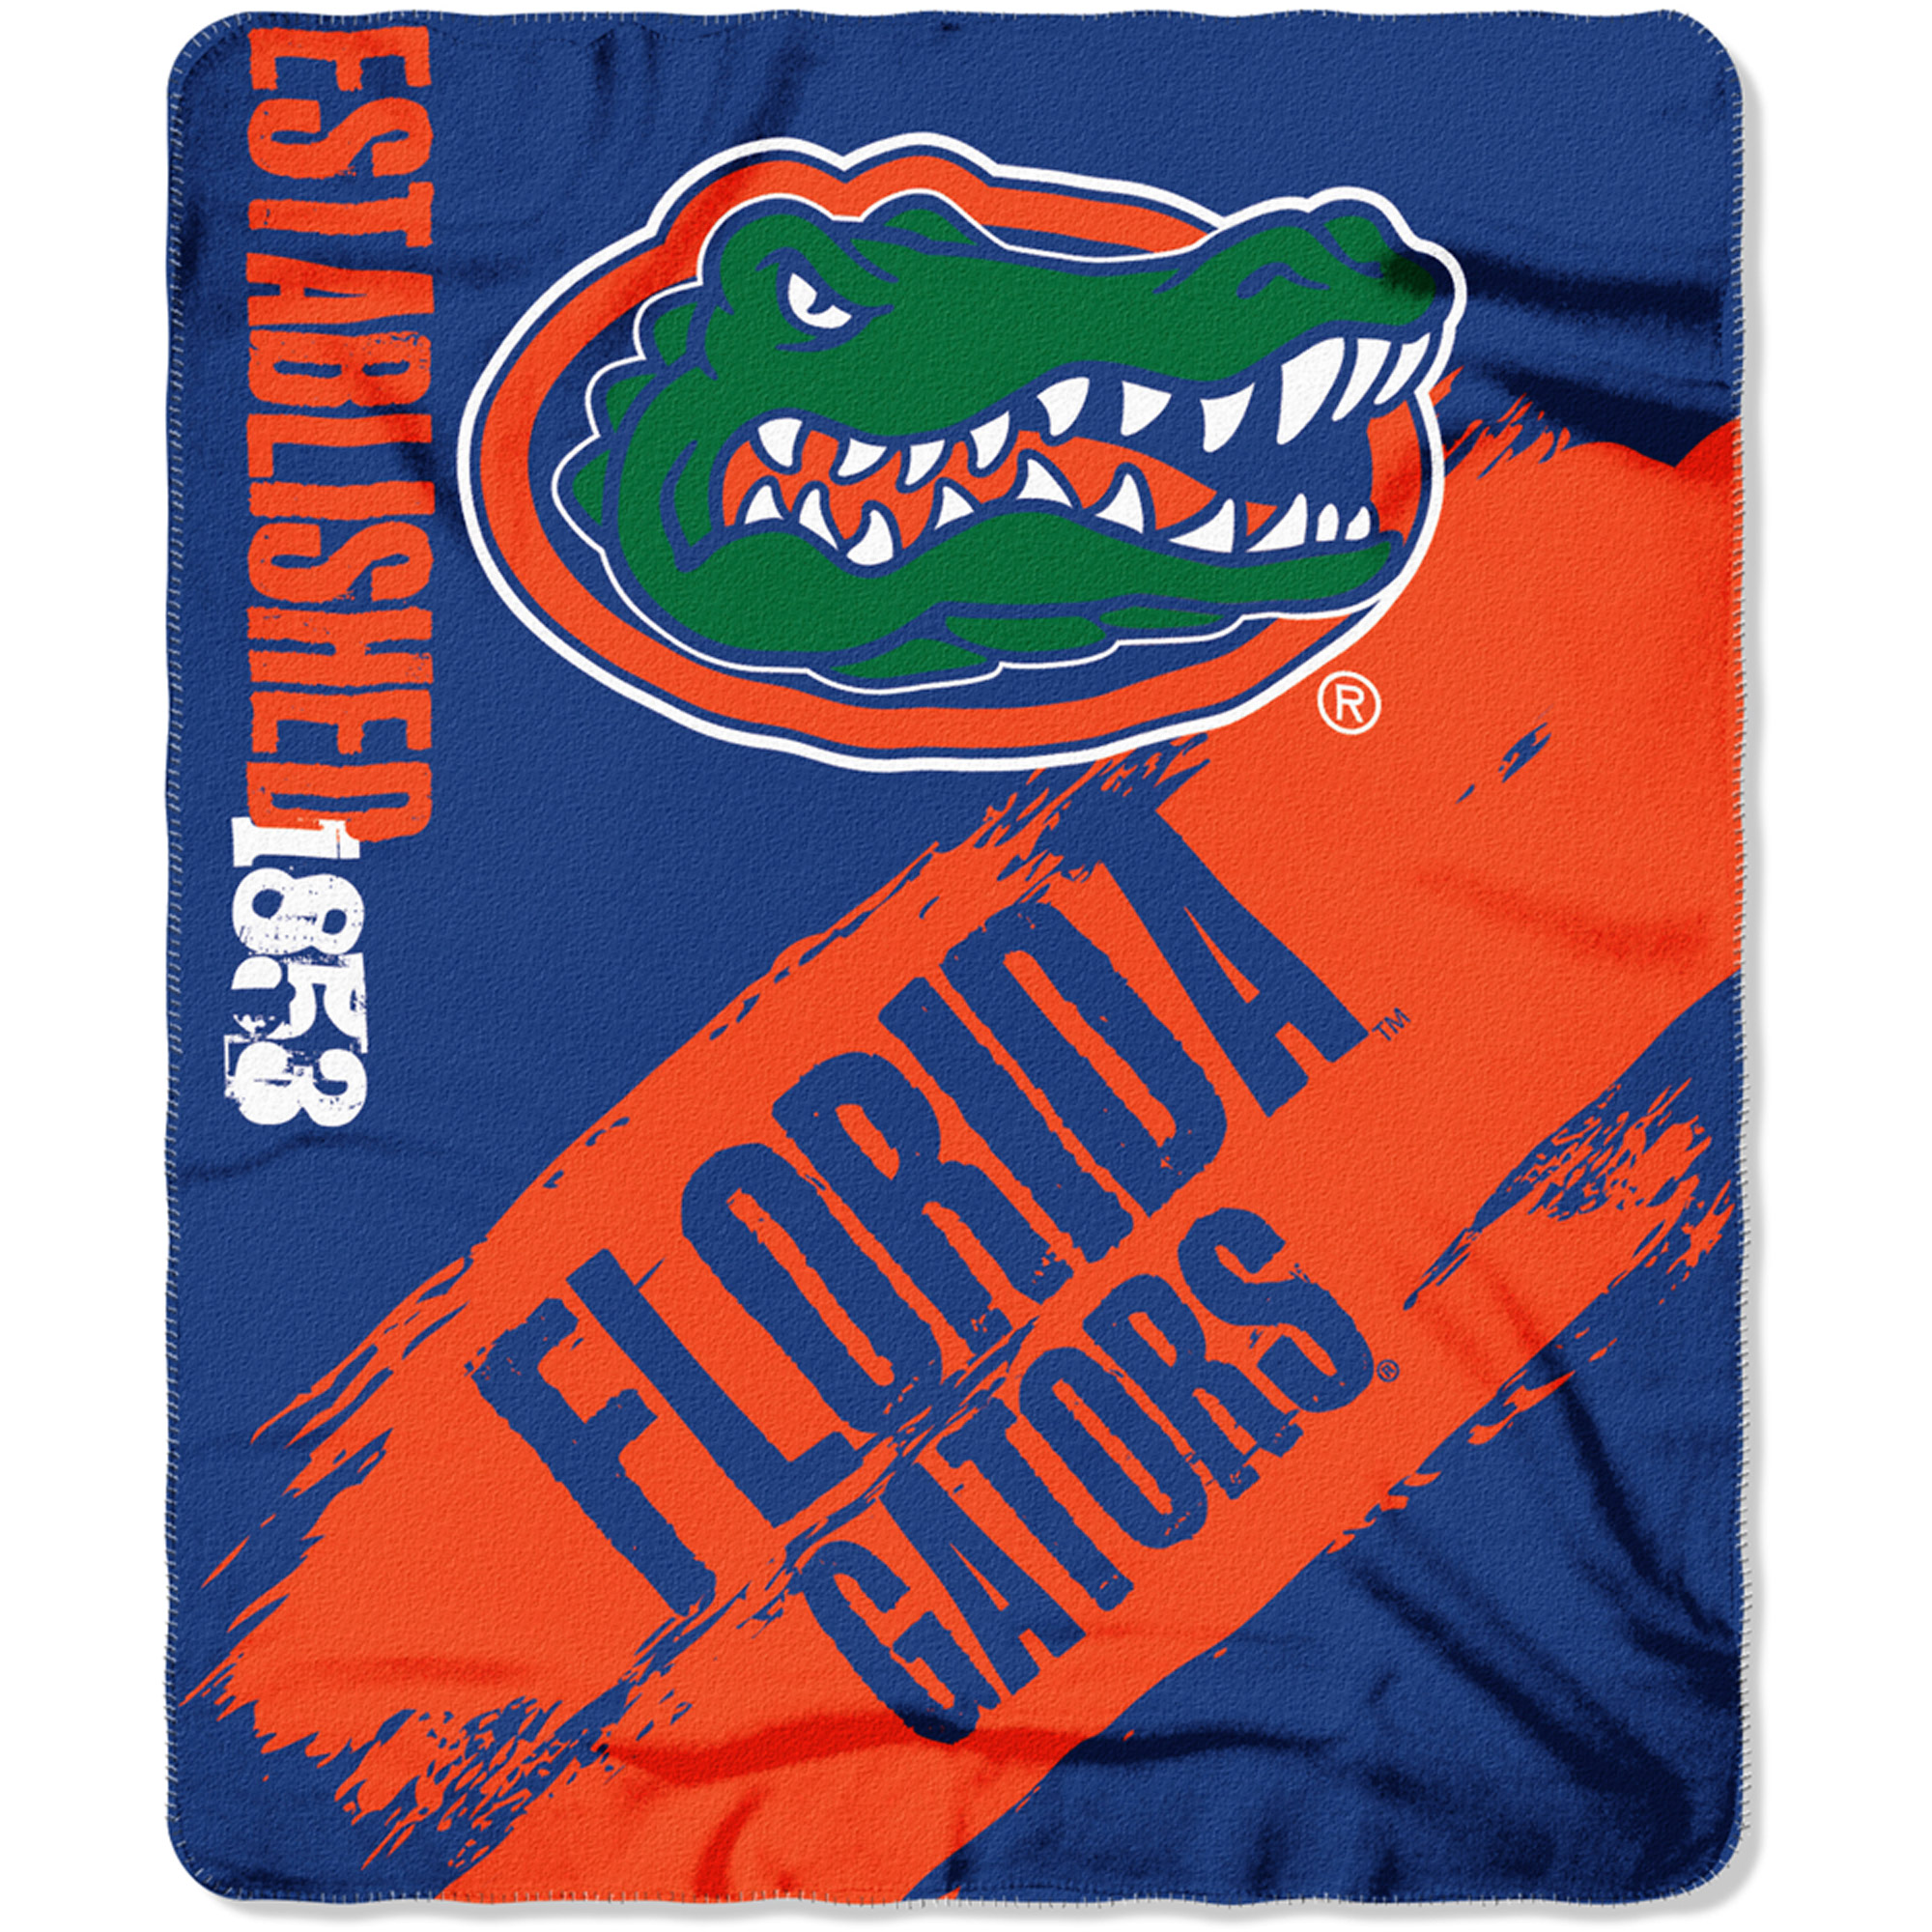 "NCAA Florida Gators 50"" x 60"" Fleece Throw"